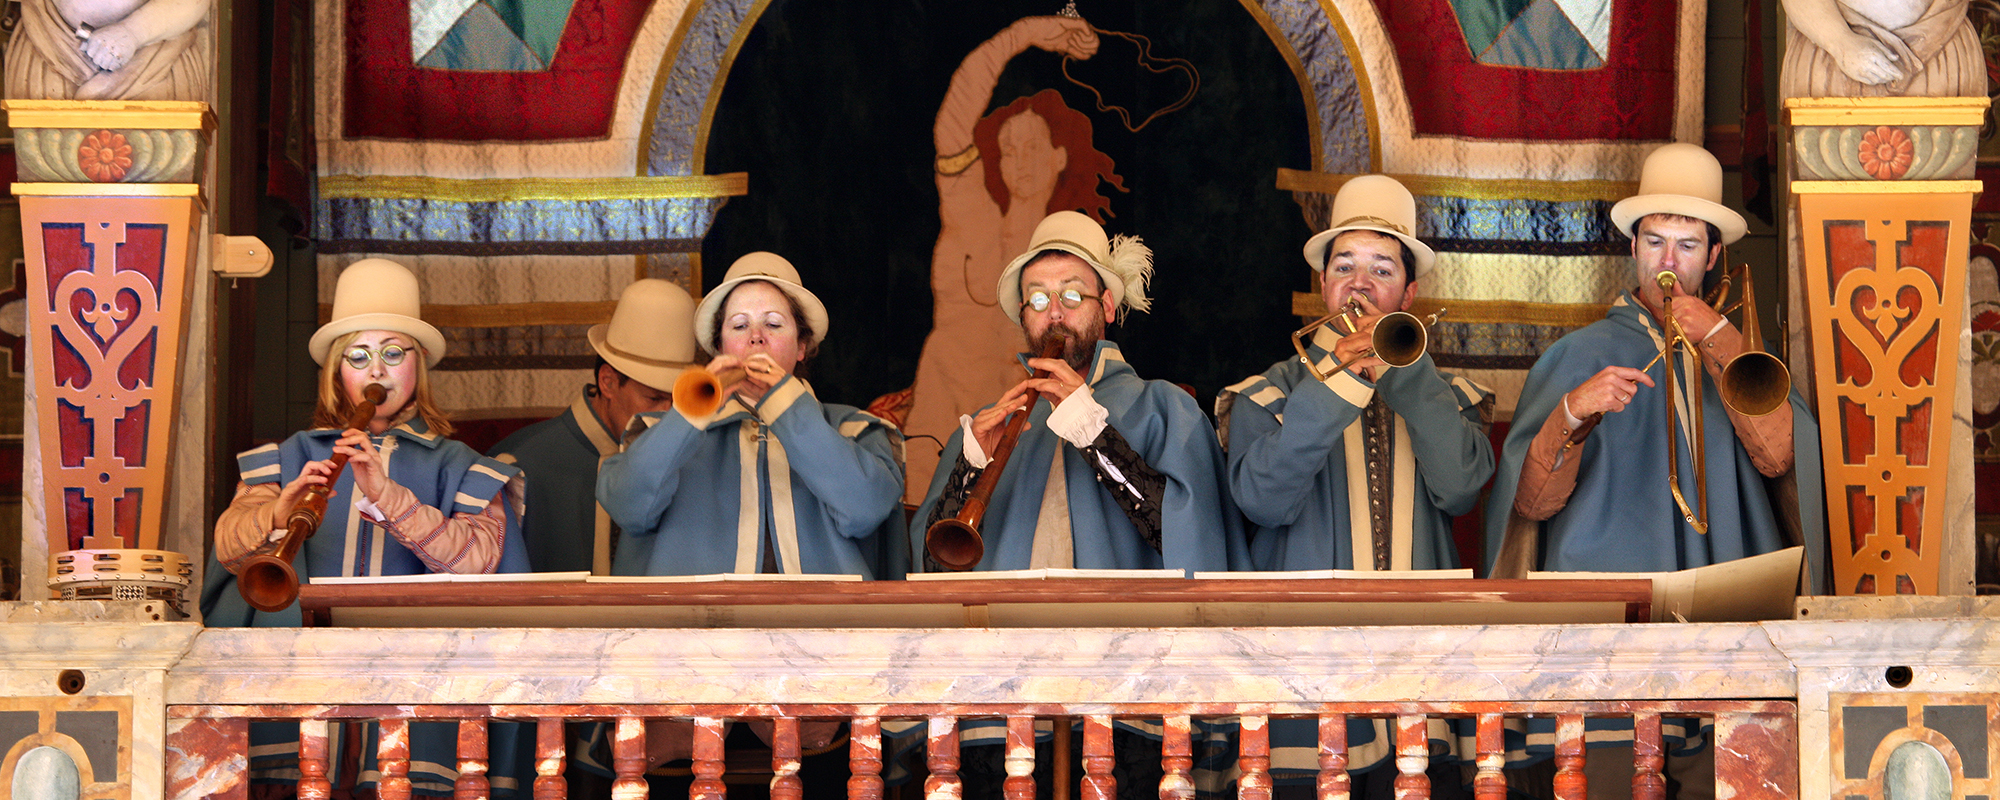 Five musicians stand in the gallery of the Globe Theatre, playing their musical instruments.